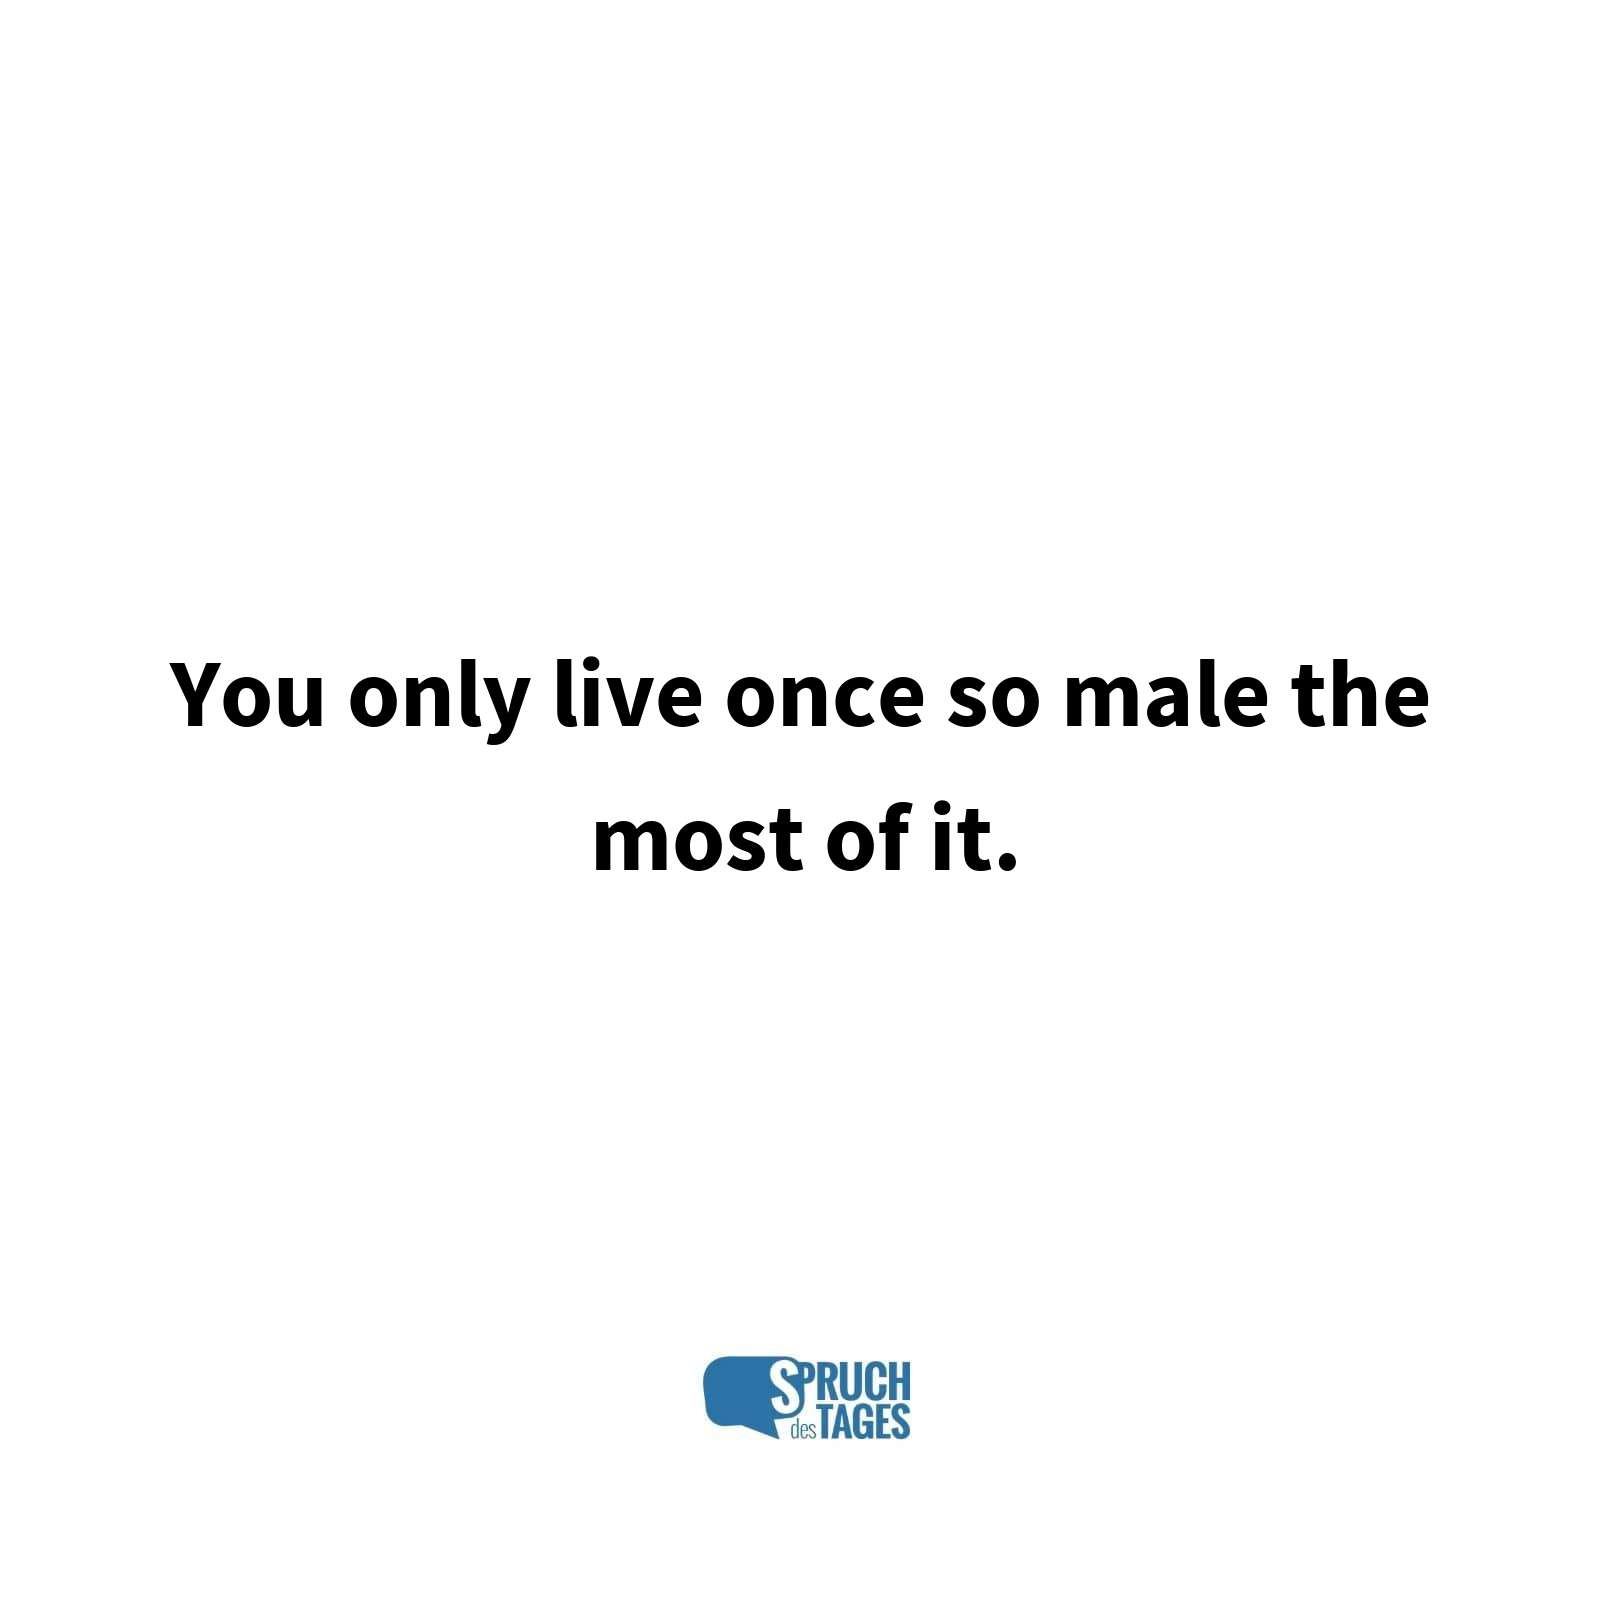 yolo sprüche englisch You only live once so male the most of it. yolo sprüche englisch